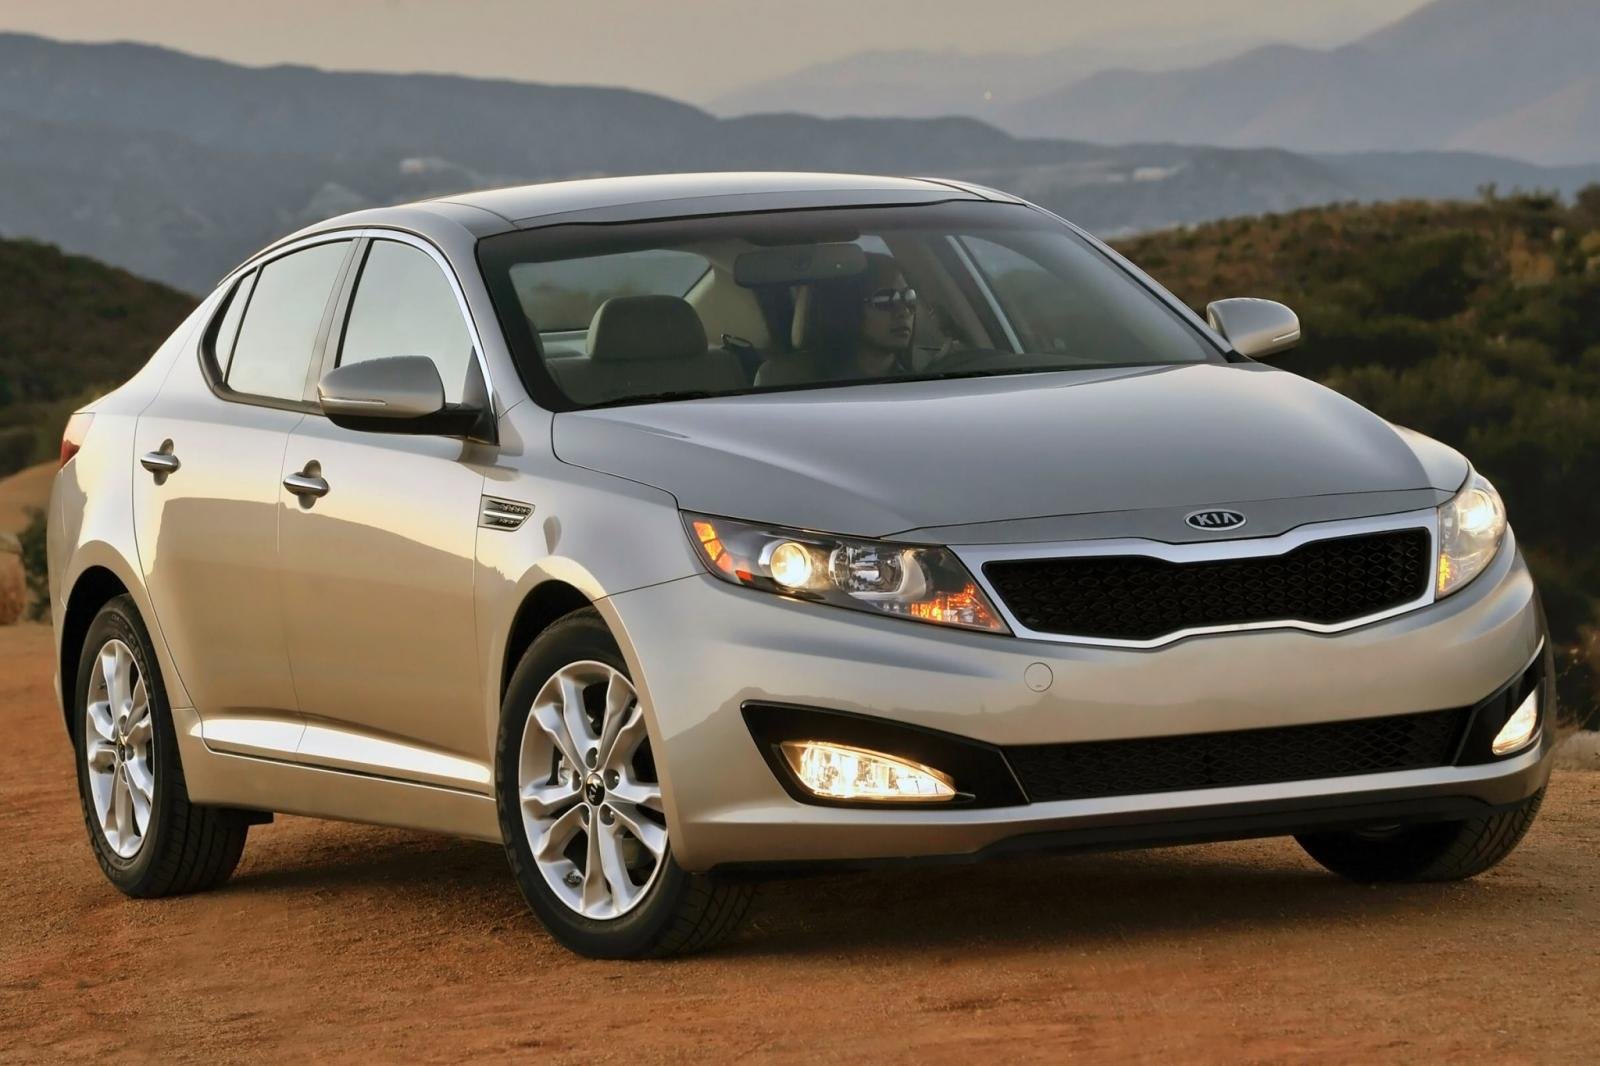 kia cars best and the on images pinterest at show oc michaelkia colors auto dream optima lx ojays